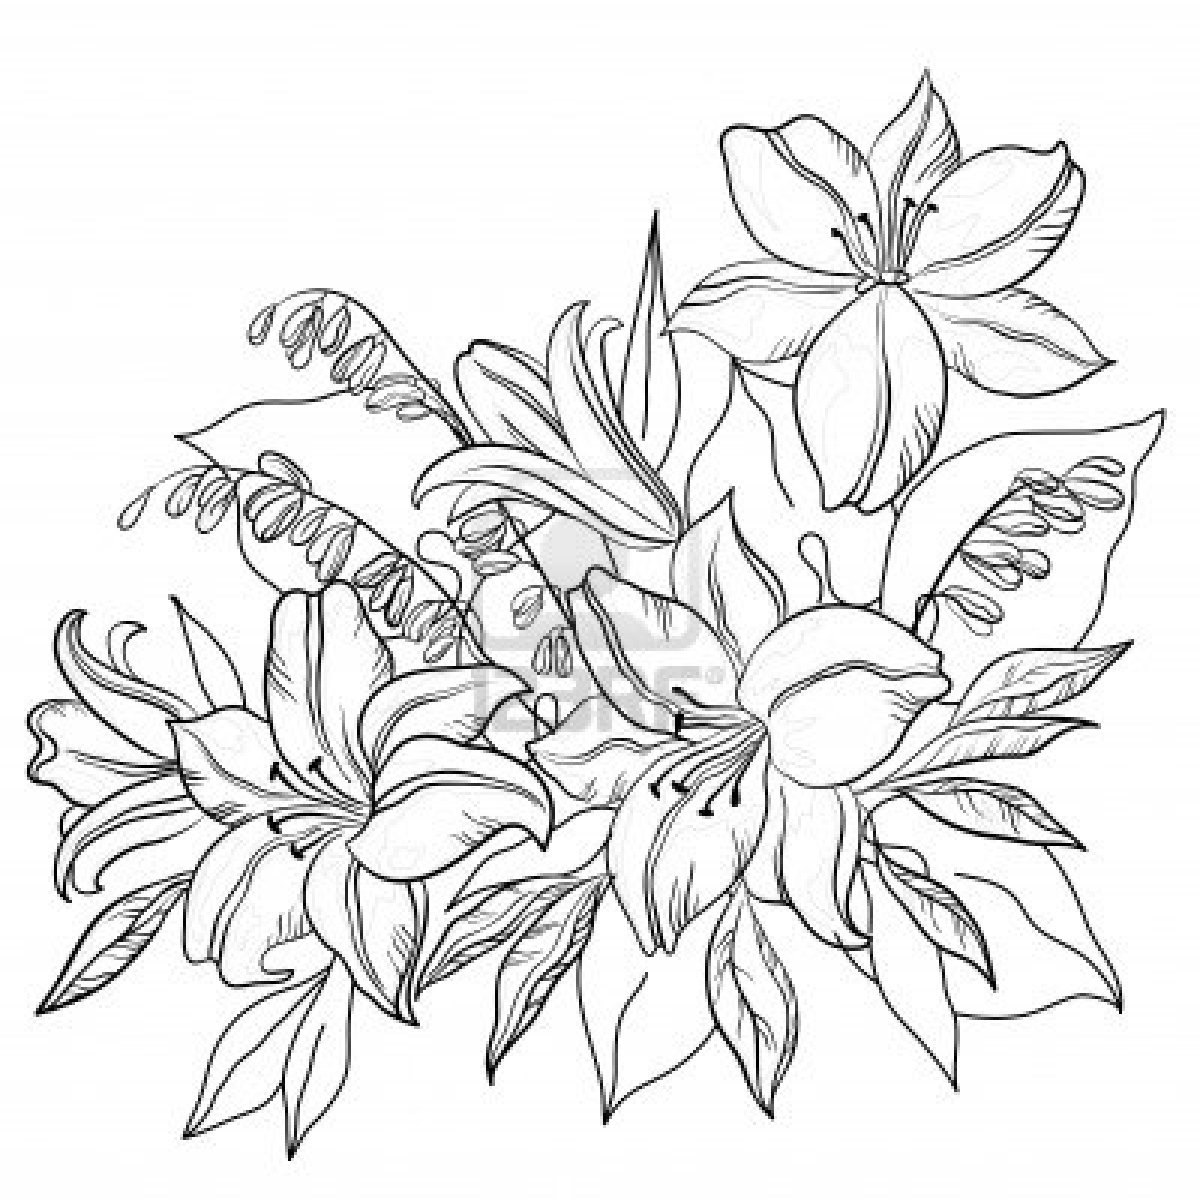 flowers outlines for colouring sunbeamflowers flowers outlines colouring for outlines flowers